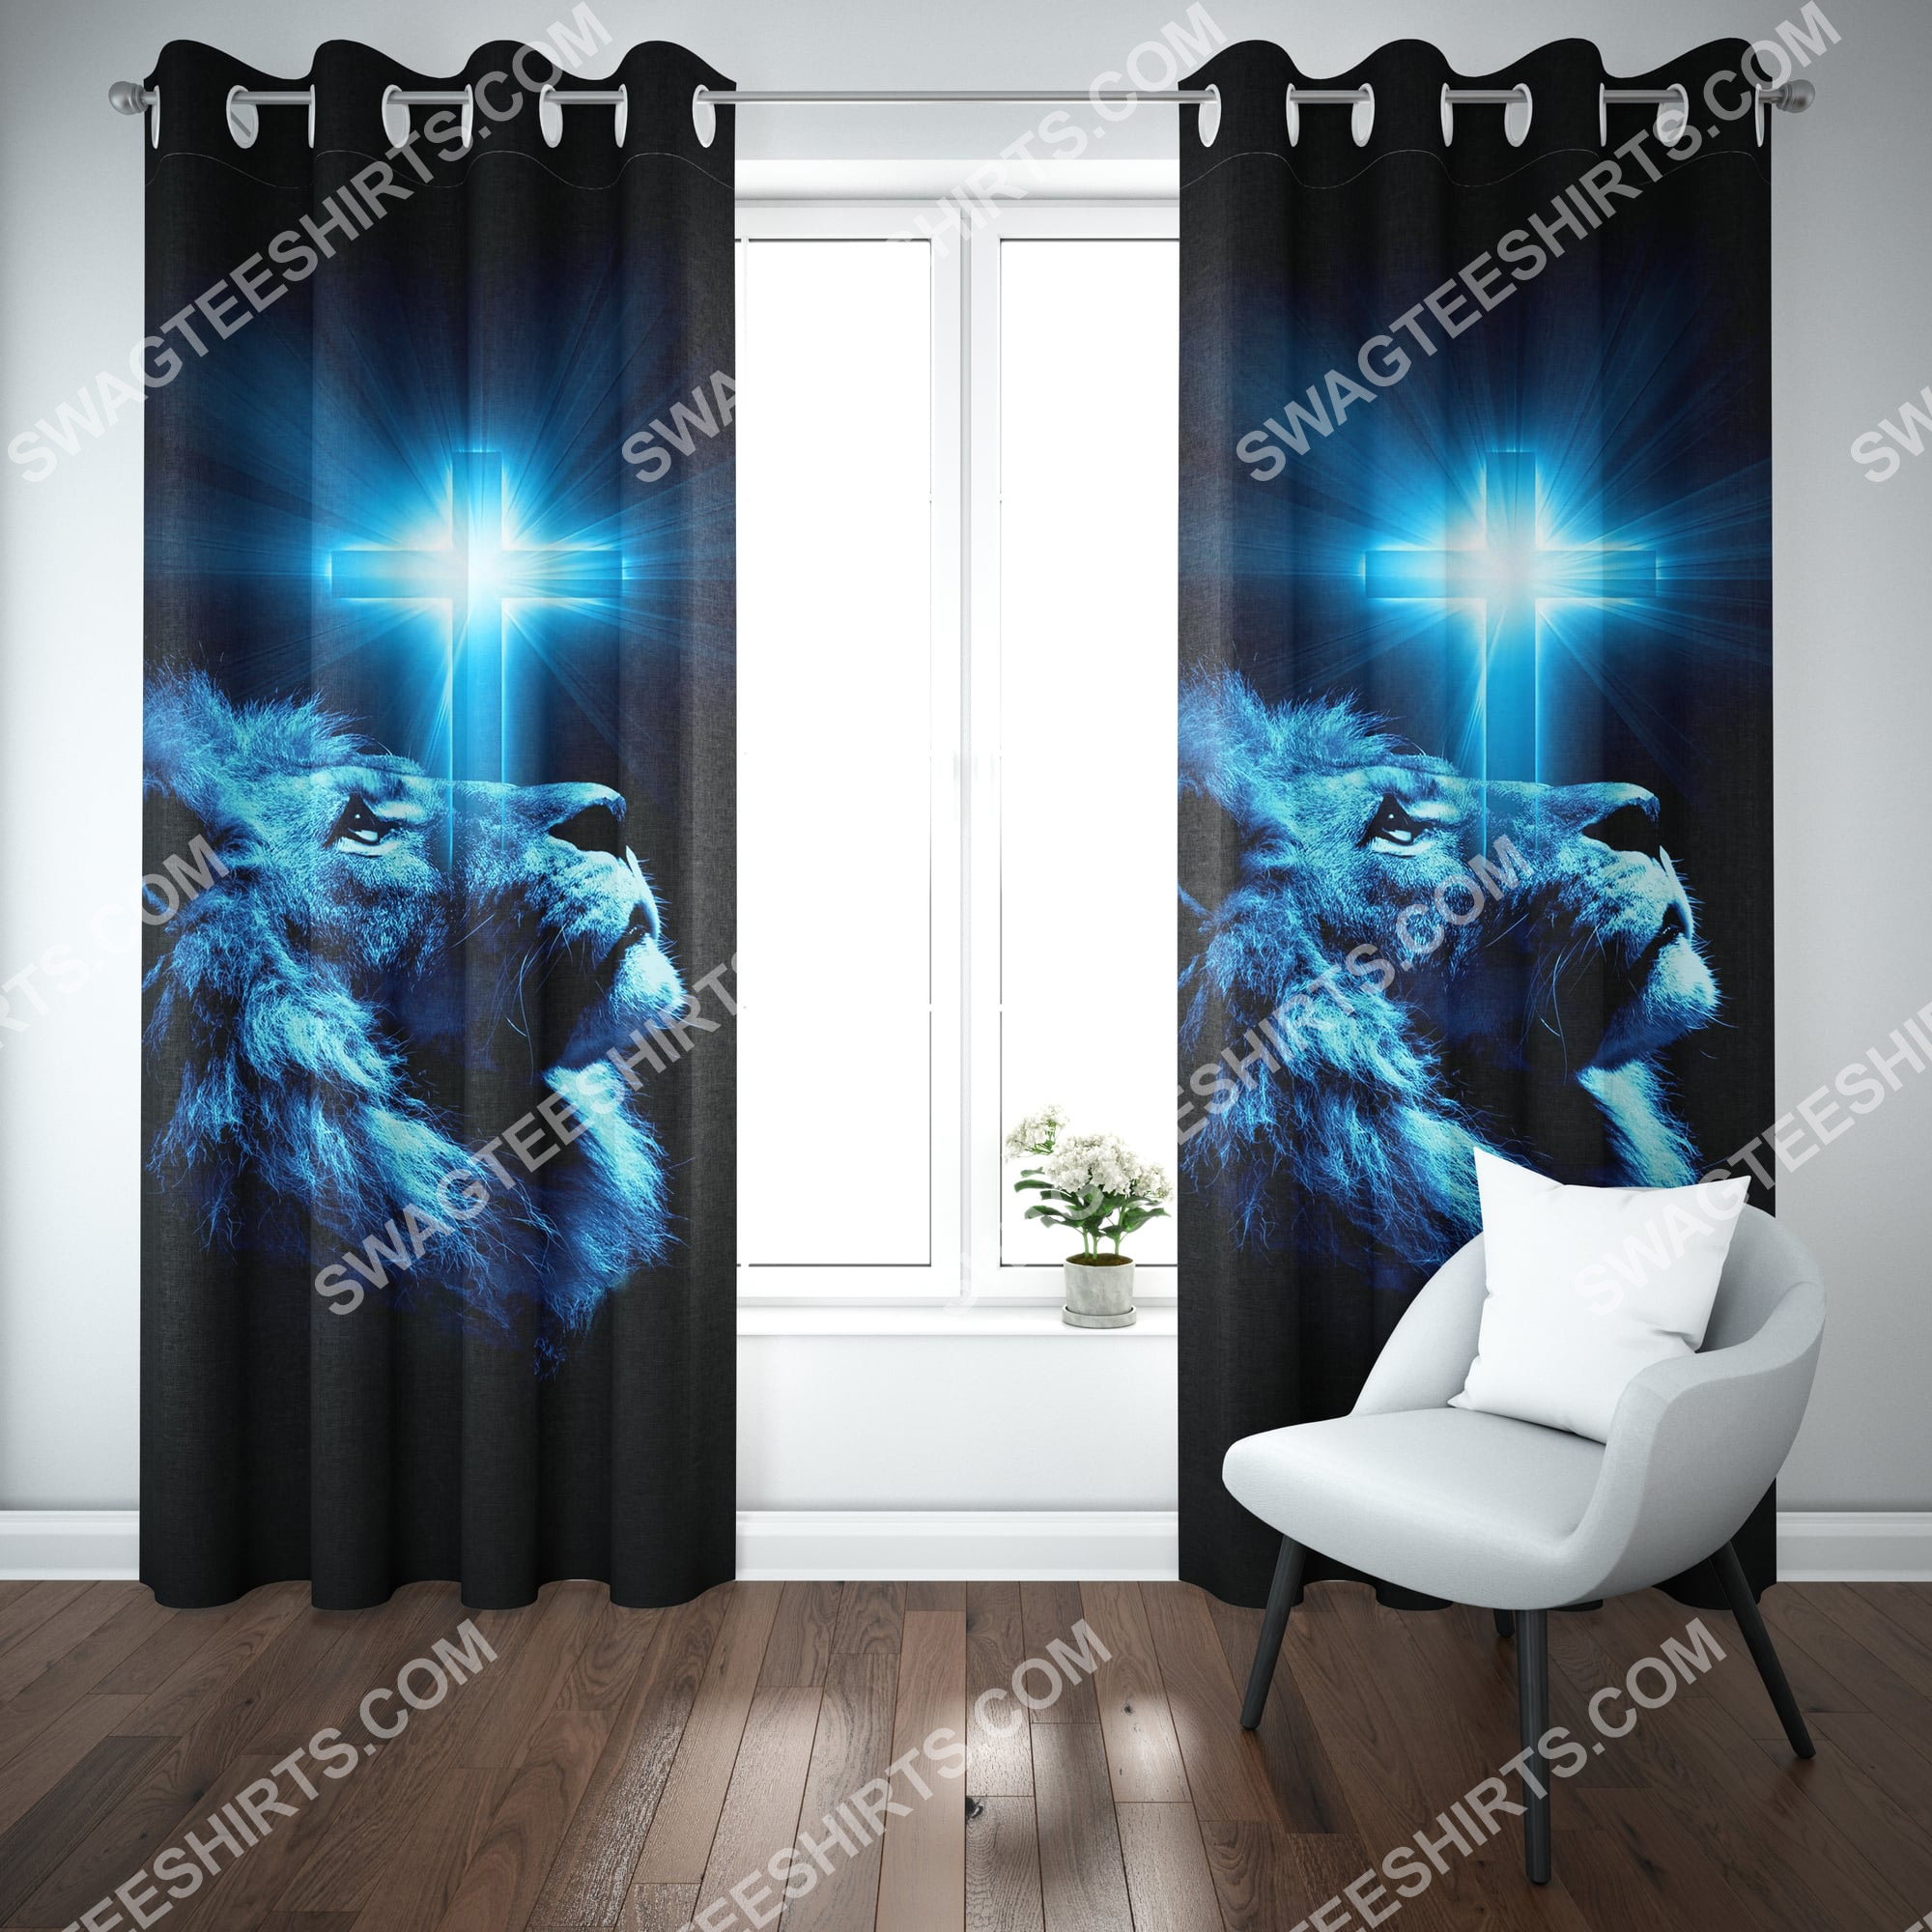 Jesus and lion all over printed window curtains 2(1) - Copy